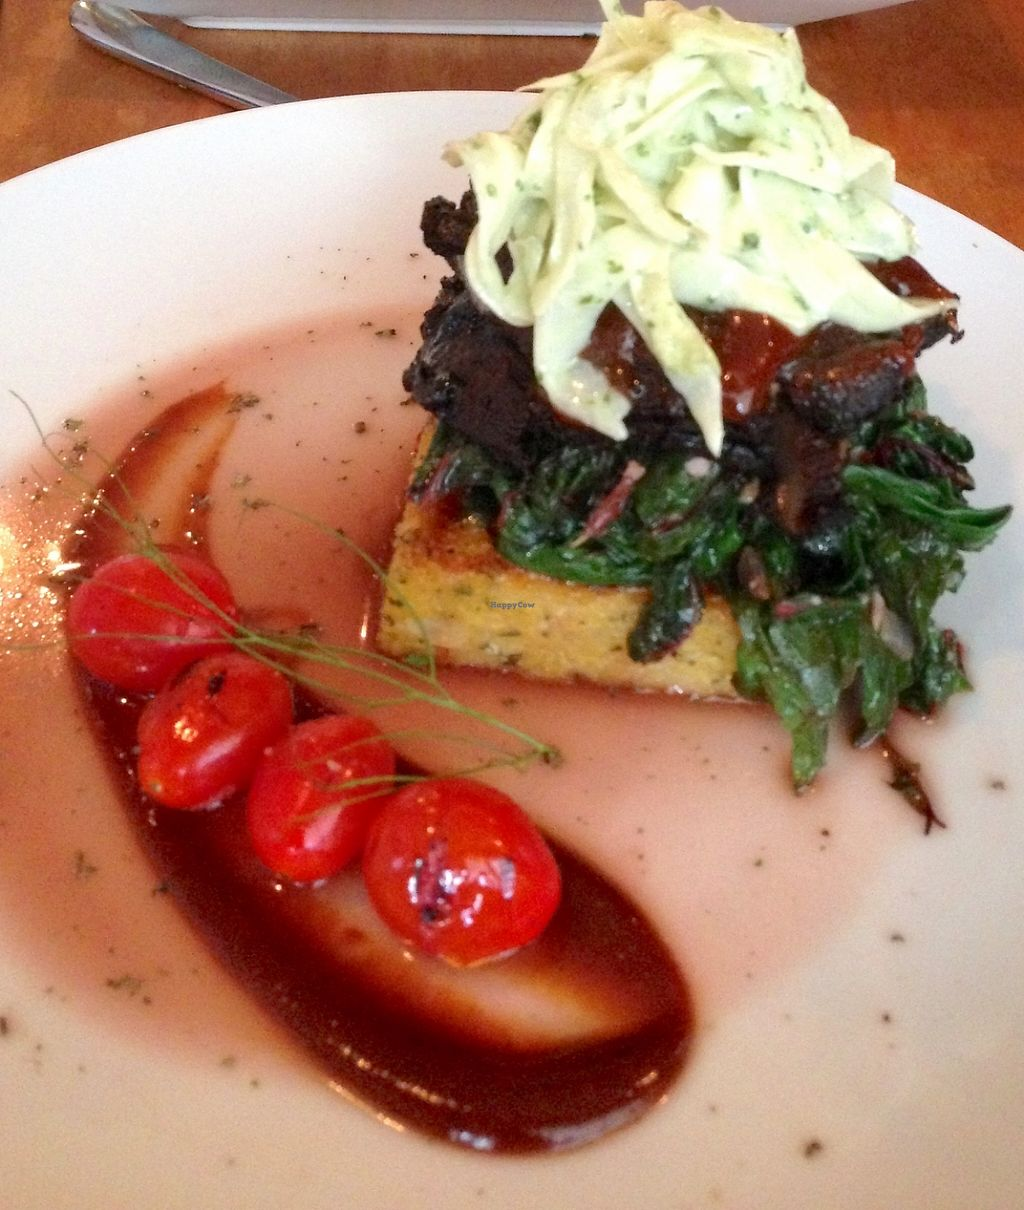 """Photo of Plant  by <a href=""""/members/profile/LaurenV"""">LaurenV</a> <br/>Polenta stacked with spinach and slaw was beyond delicious and I had leftovers the next day! <br/> November 20, 2015  - <a href='/contact/abuse/image/27945/213413'>Report</a>"""